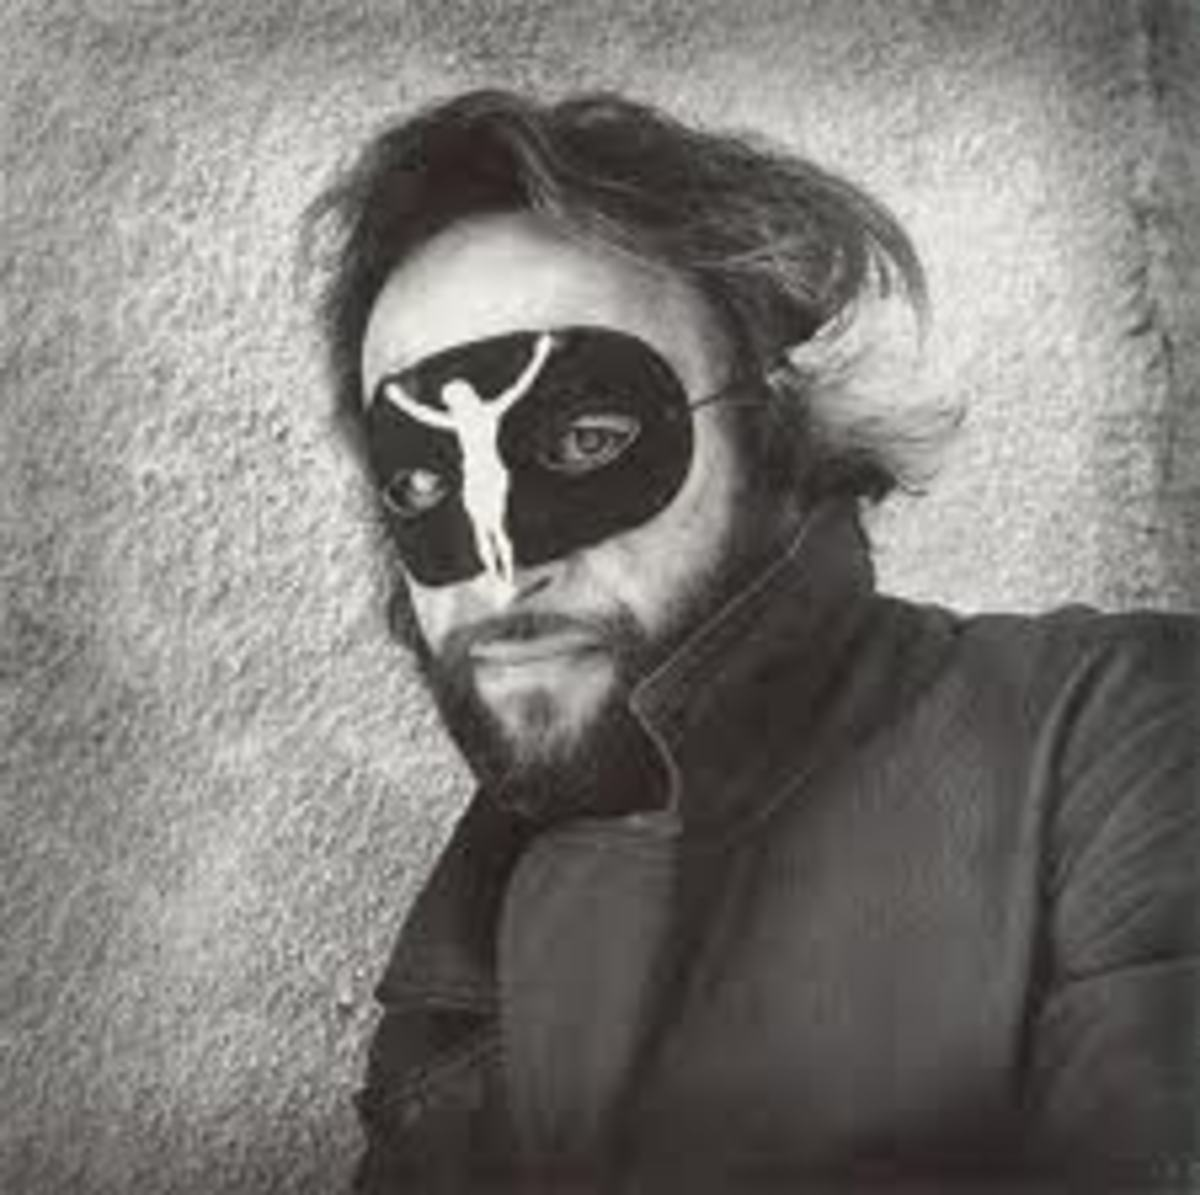 Peter Witkin: born September 13, 1939, in Brooklyn, New York City